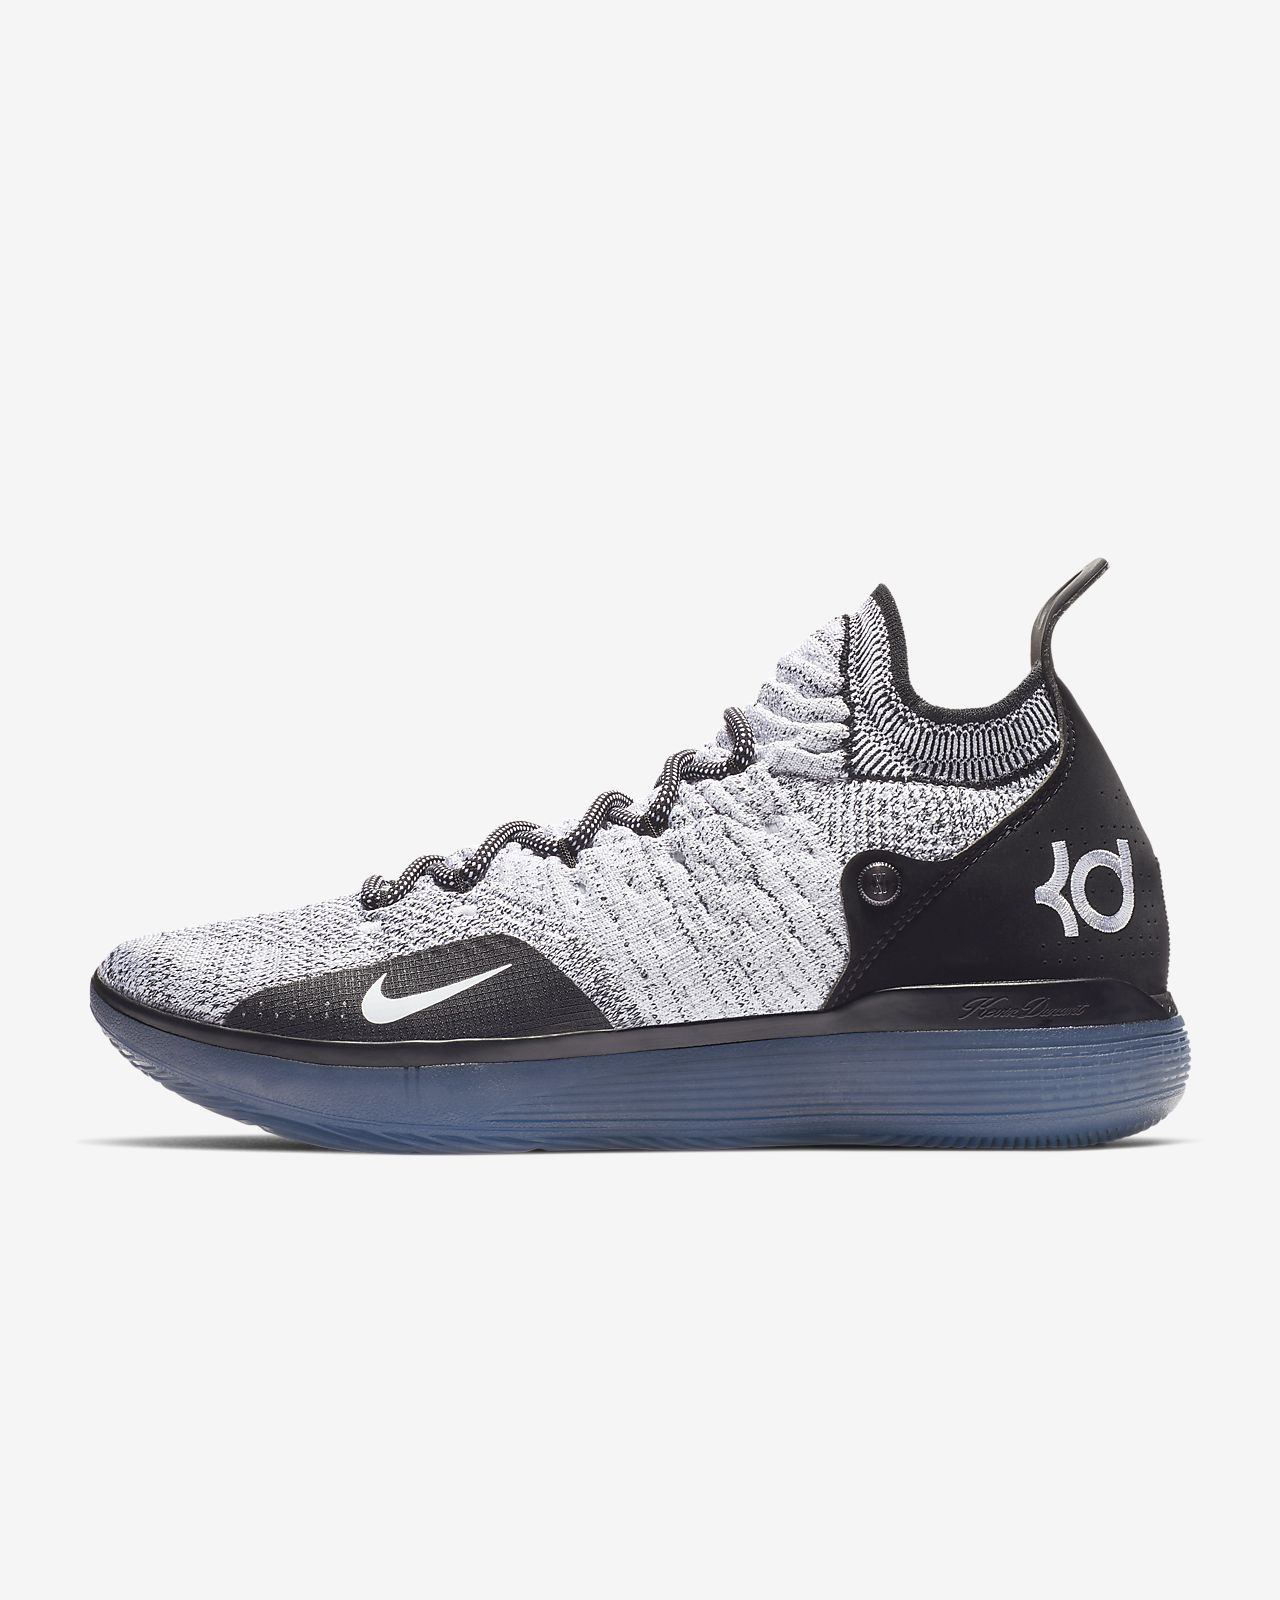 Nike Air Kevin Durant KD 11 Zoom Fashion Low Cut Men's Basketball Shoes for men sport sneaker shoes